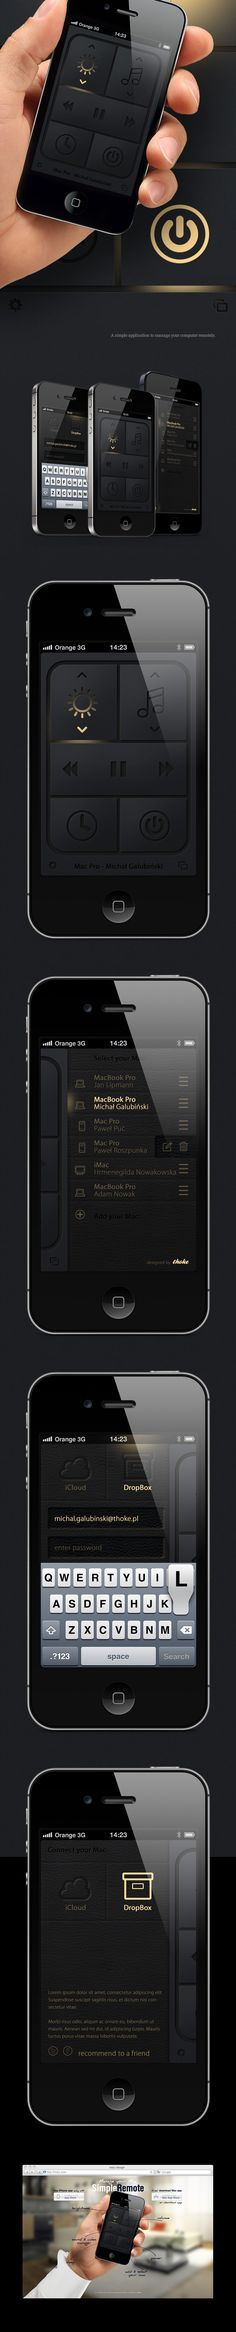 Simple mac remote (Concept) by Michal Galubinski, via Behance *** A simple application to manage your computer remotely. Web Design Mobile, Web Ui Design, Application Design, Ui Design Inspiration, Ui Web, Ipad, User Interface Design, Layout, Grafik Design